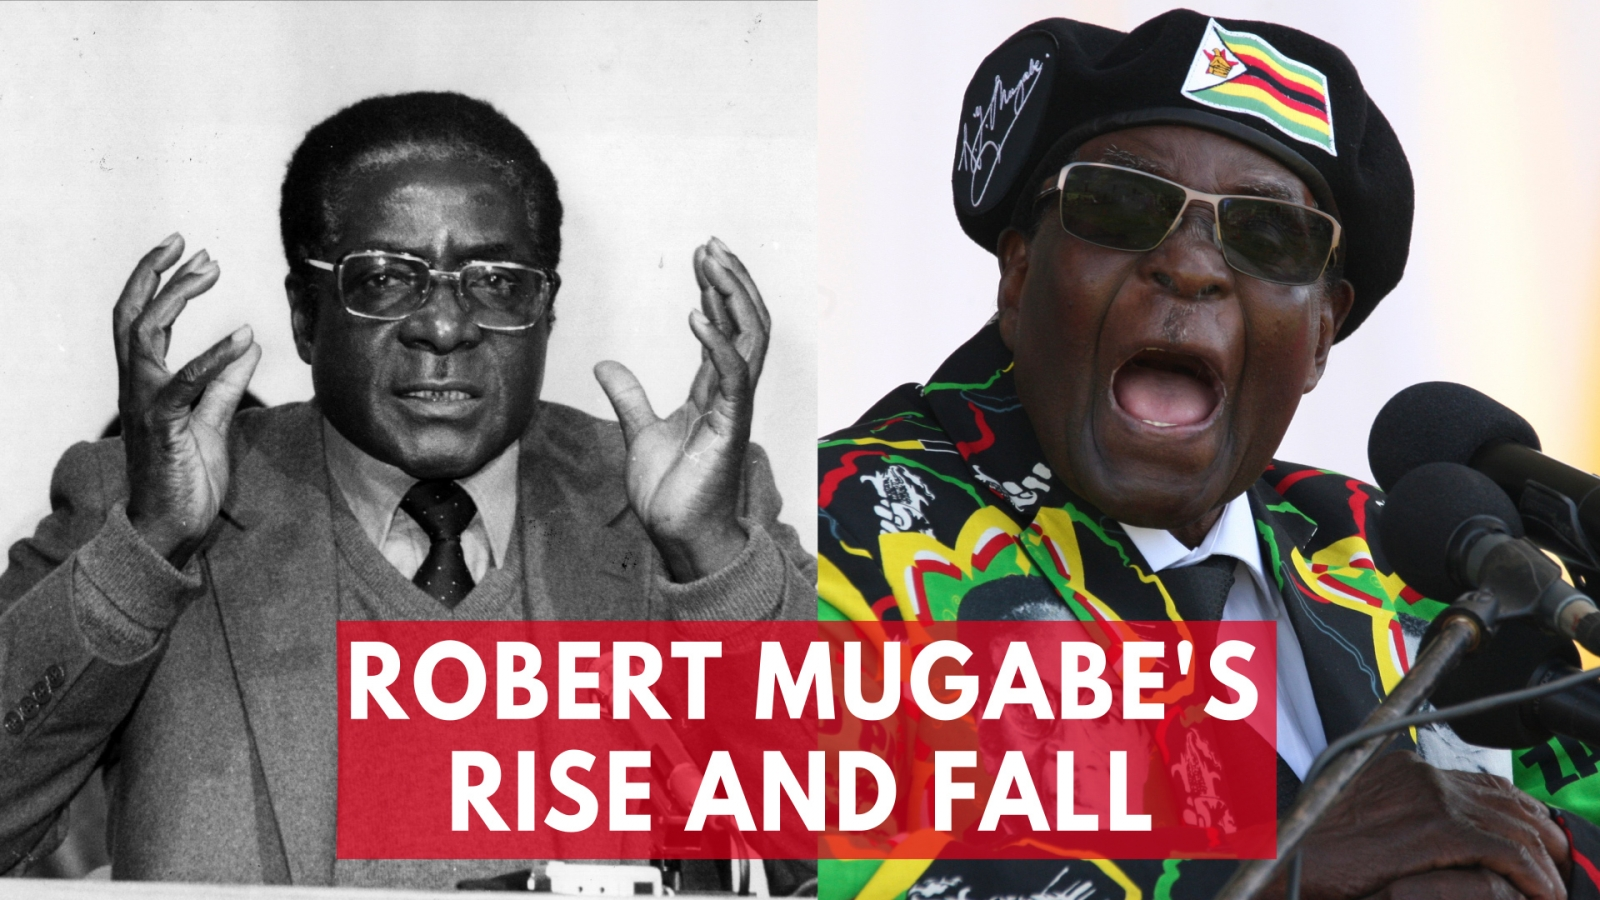 President Robert Mugabe's rise and fall